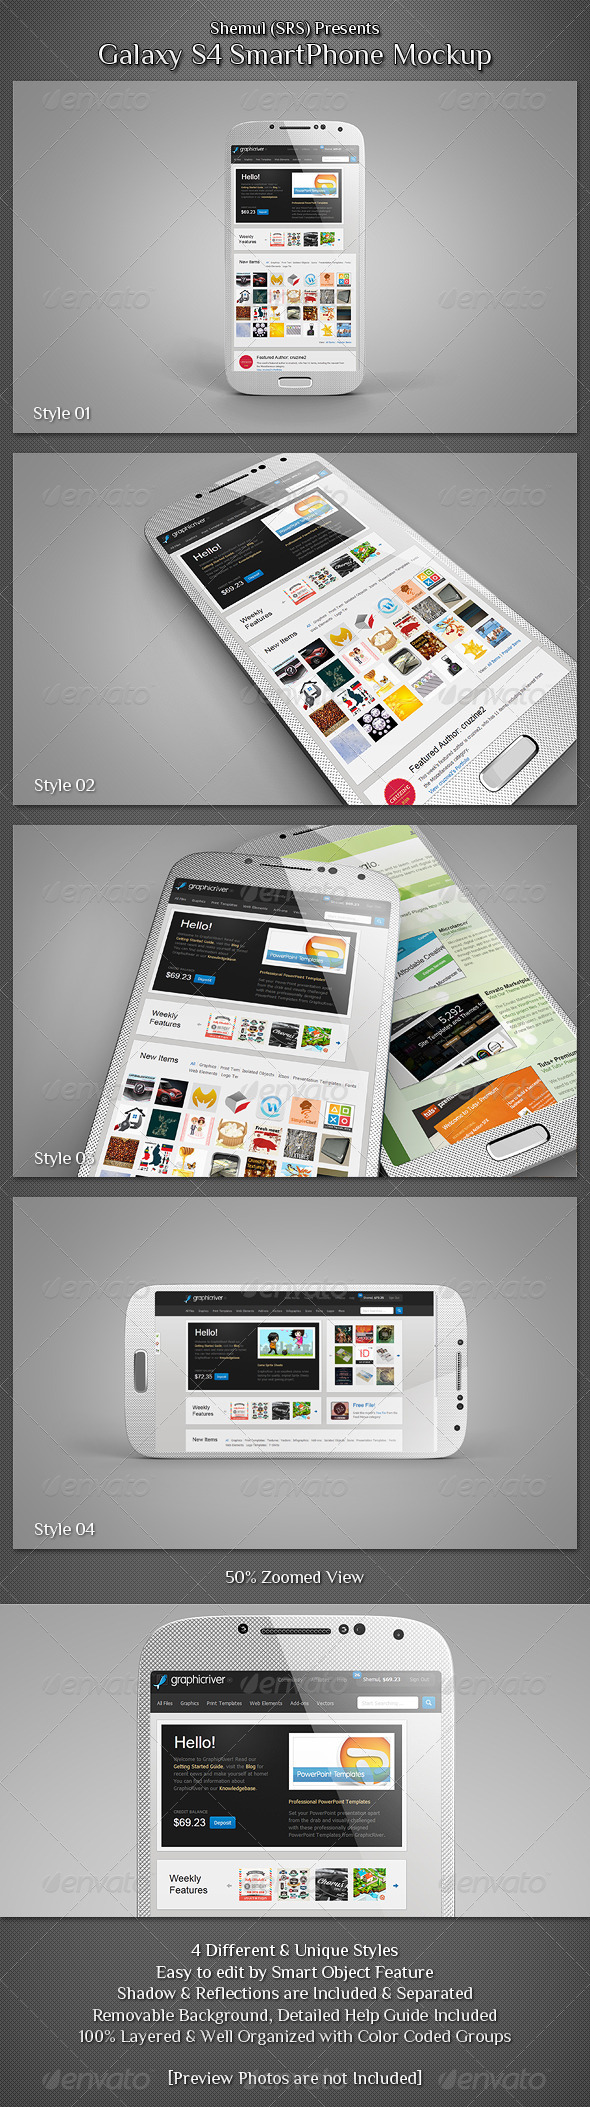 Galaxy S4 Smartphone Mockup - Mobile Displays